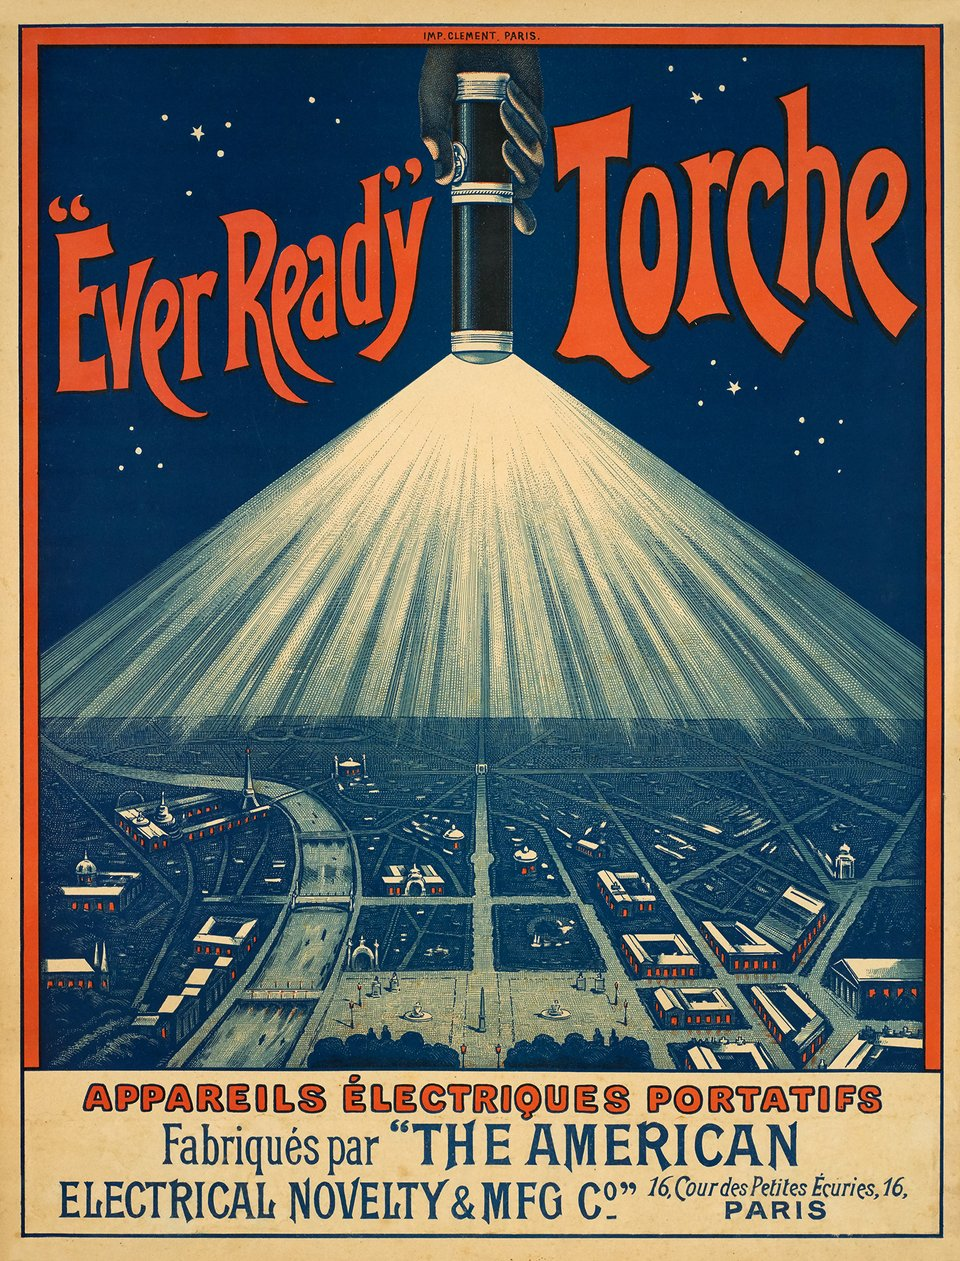 Ever Ready Torche – Affiche ancienne – ANONYME – 1900